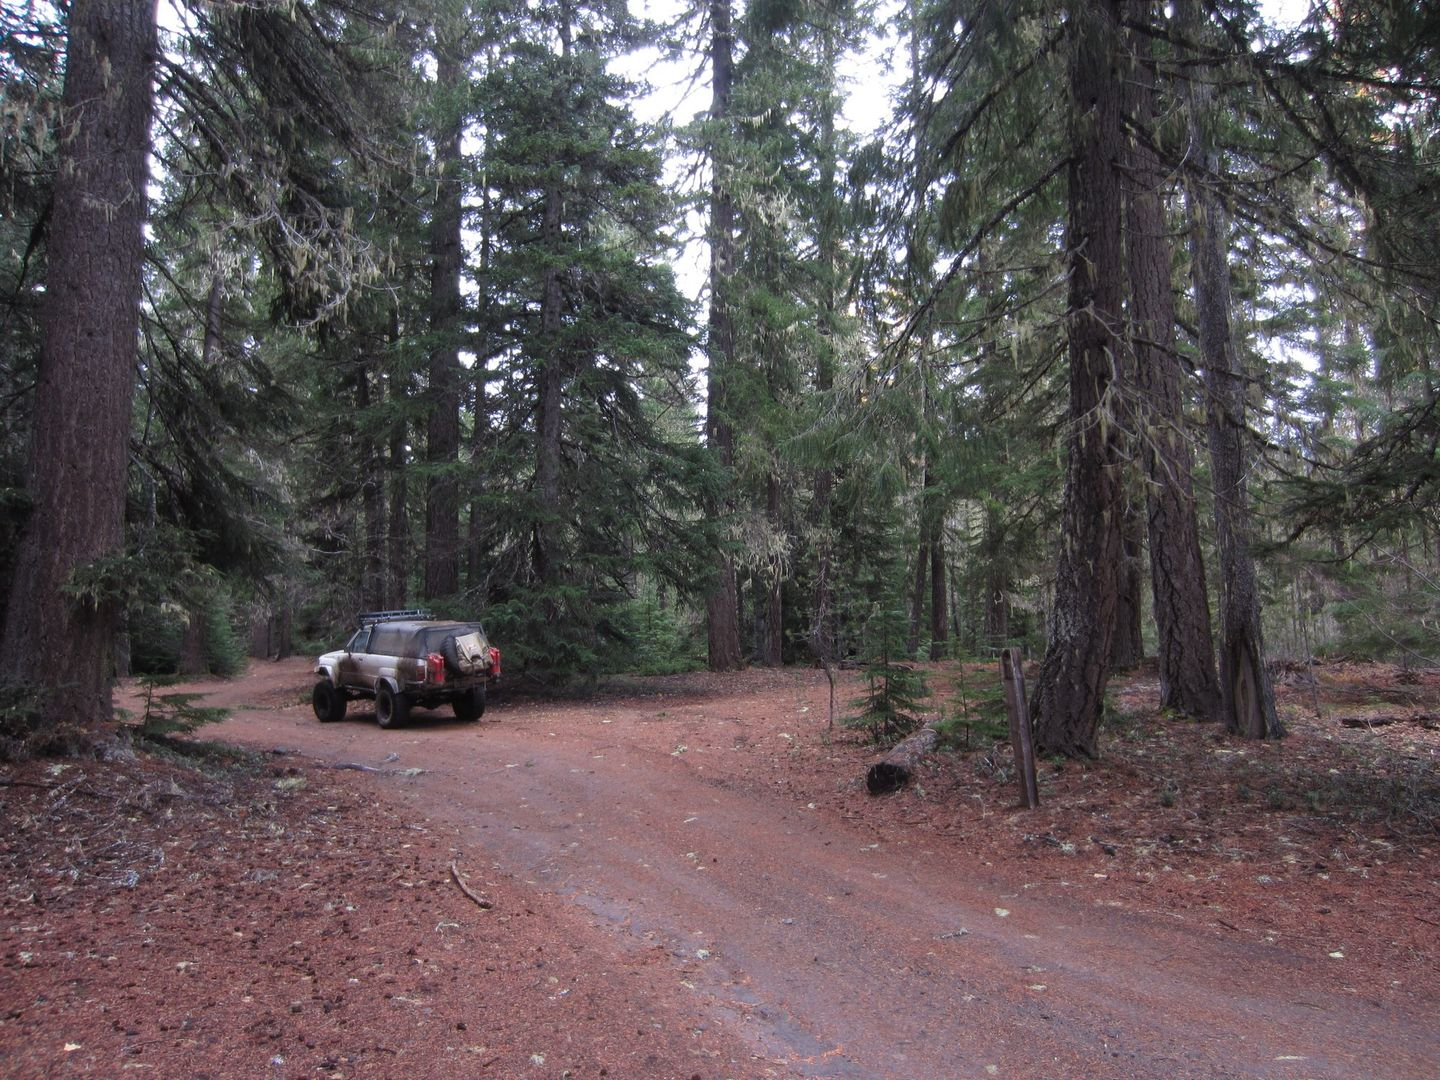 Barlow Trail - Waypoint 37: Continue Straight